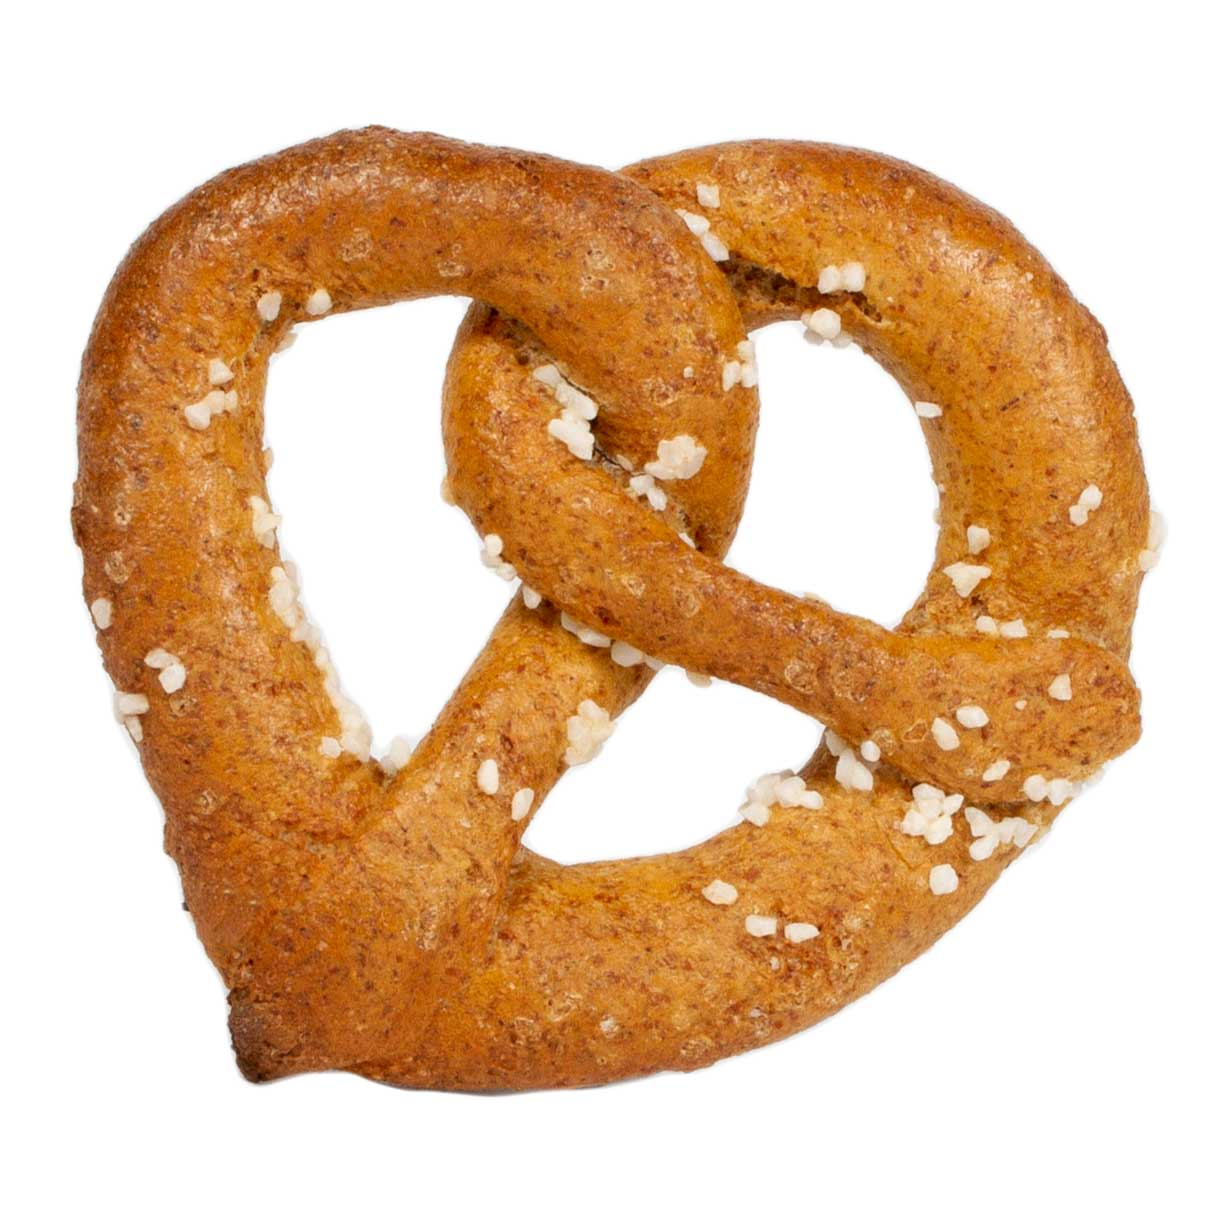 Whole Wheat Pretzel